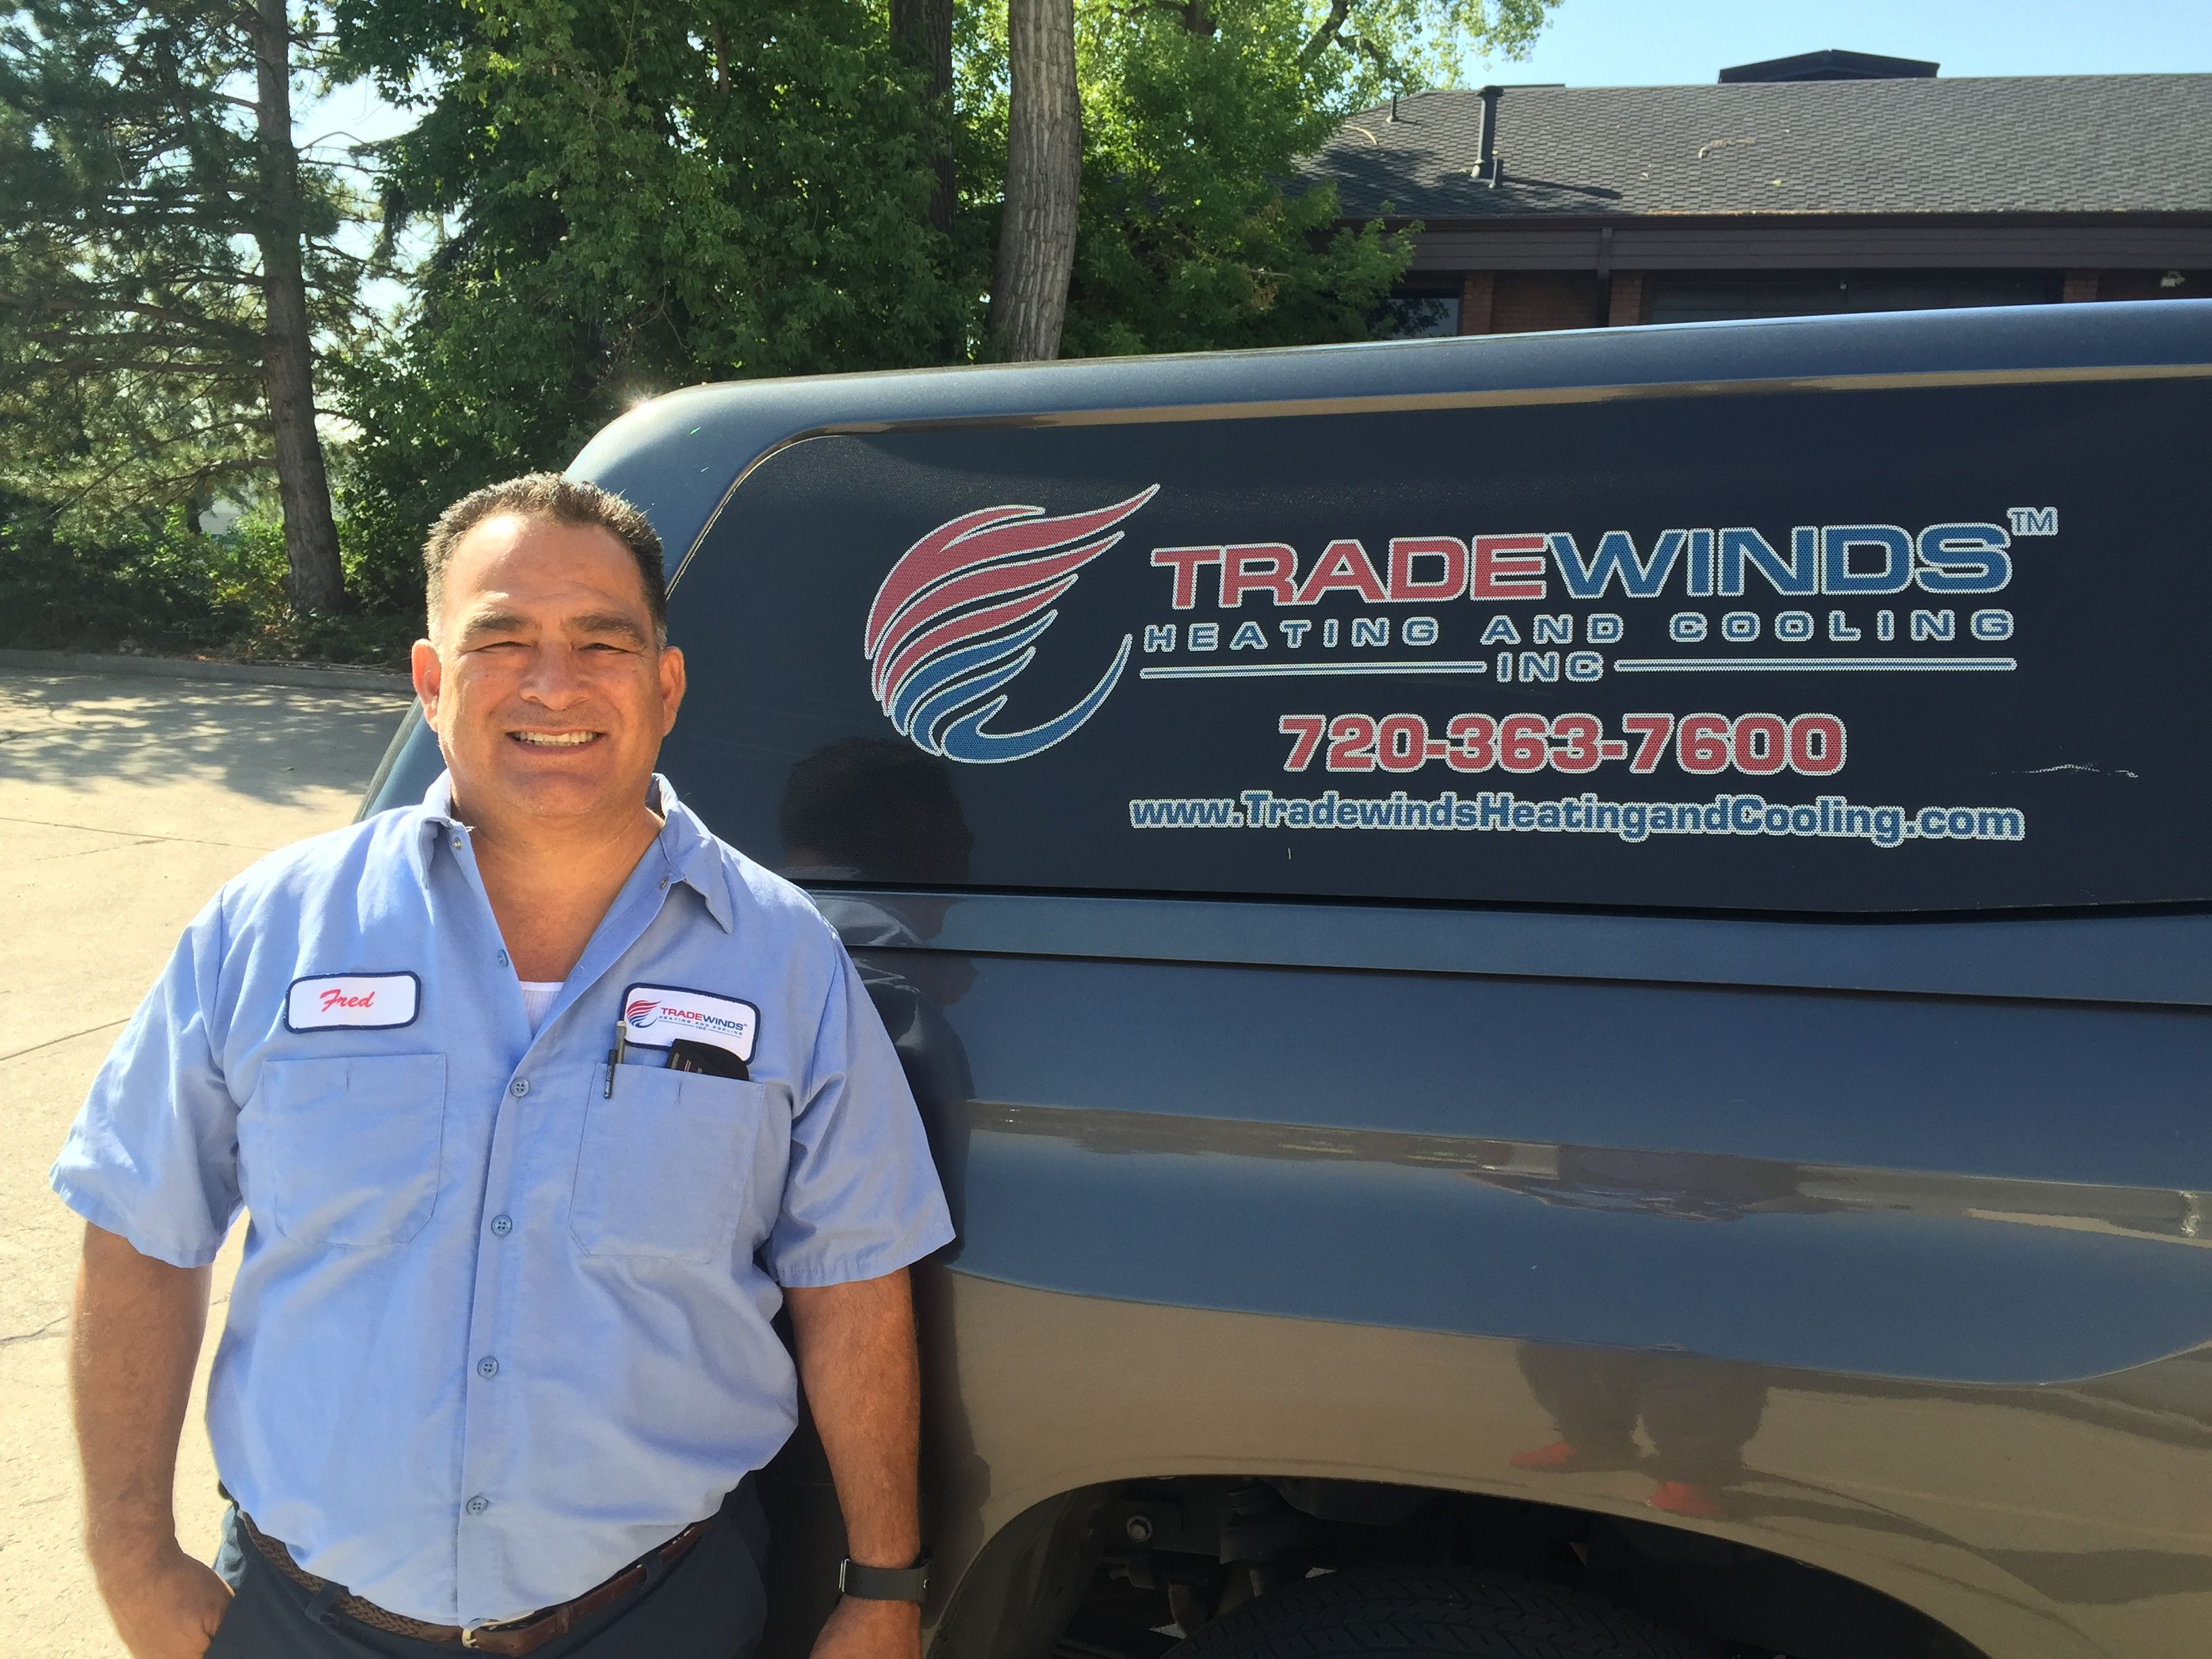 Fred Is The Owner Of Tradewinds Heating And Cooling Inc Call Us